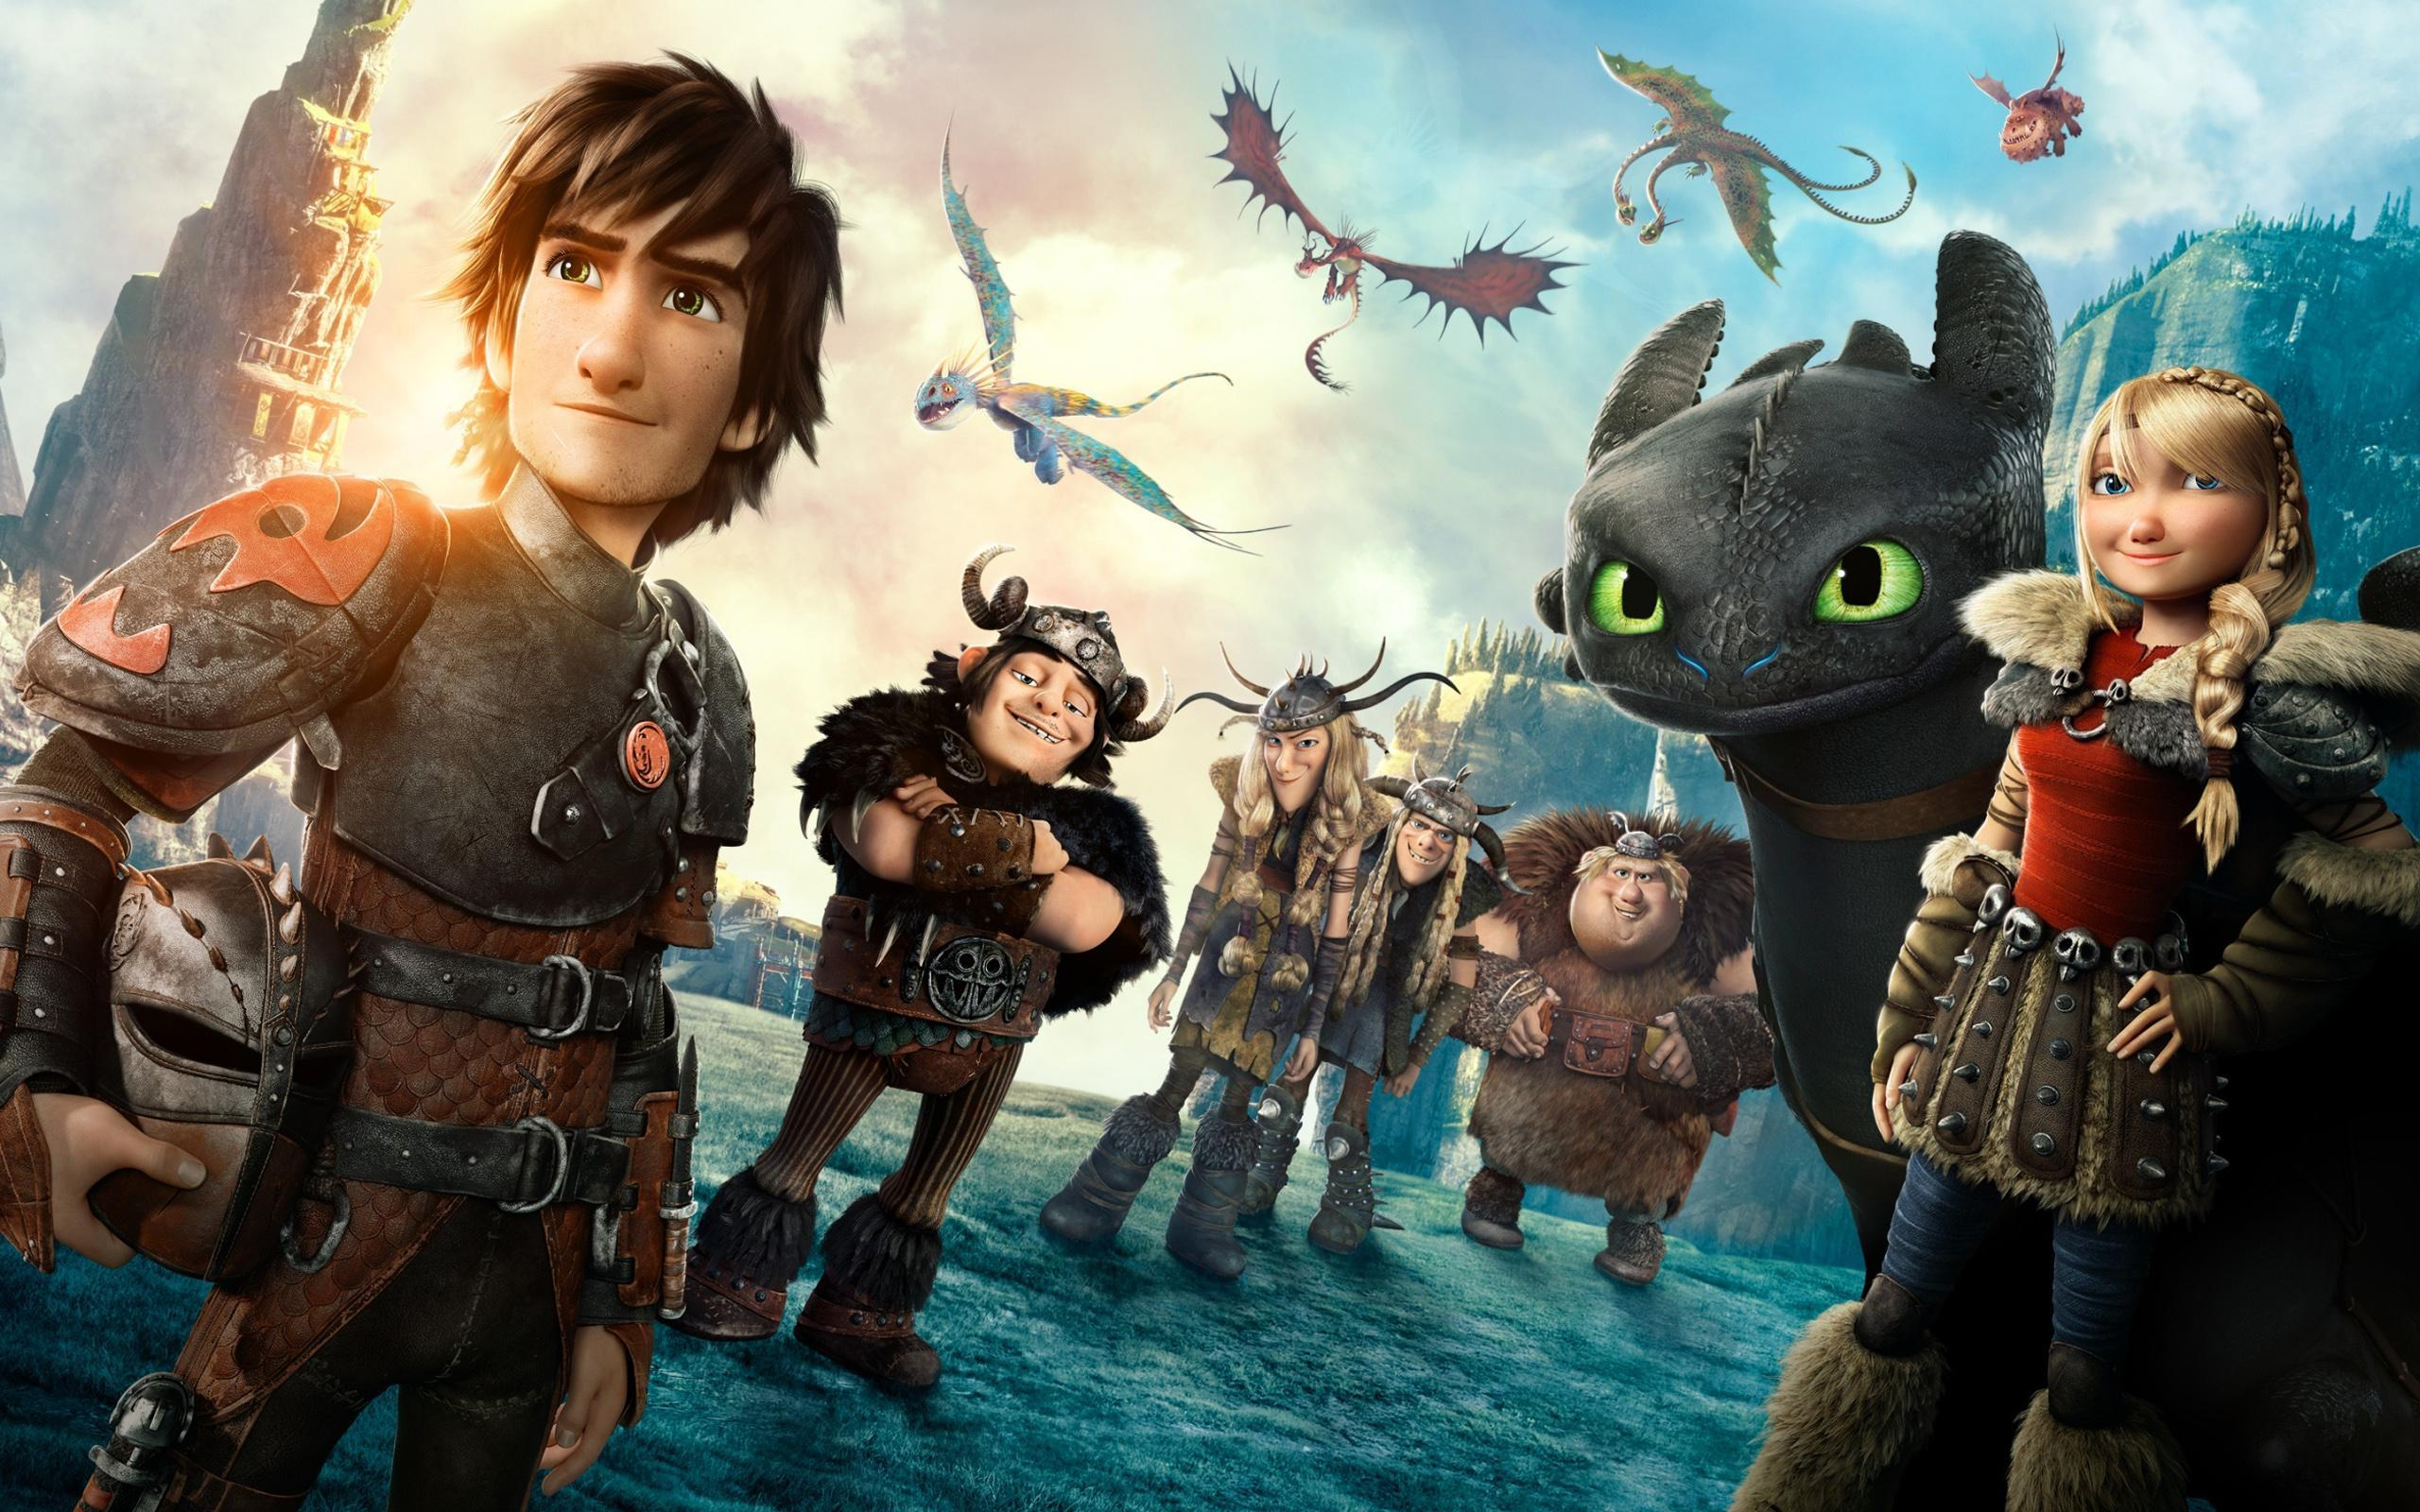 Train Your Dragon Wallpaper Hd For Android Apk Download